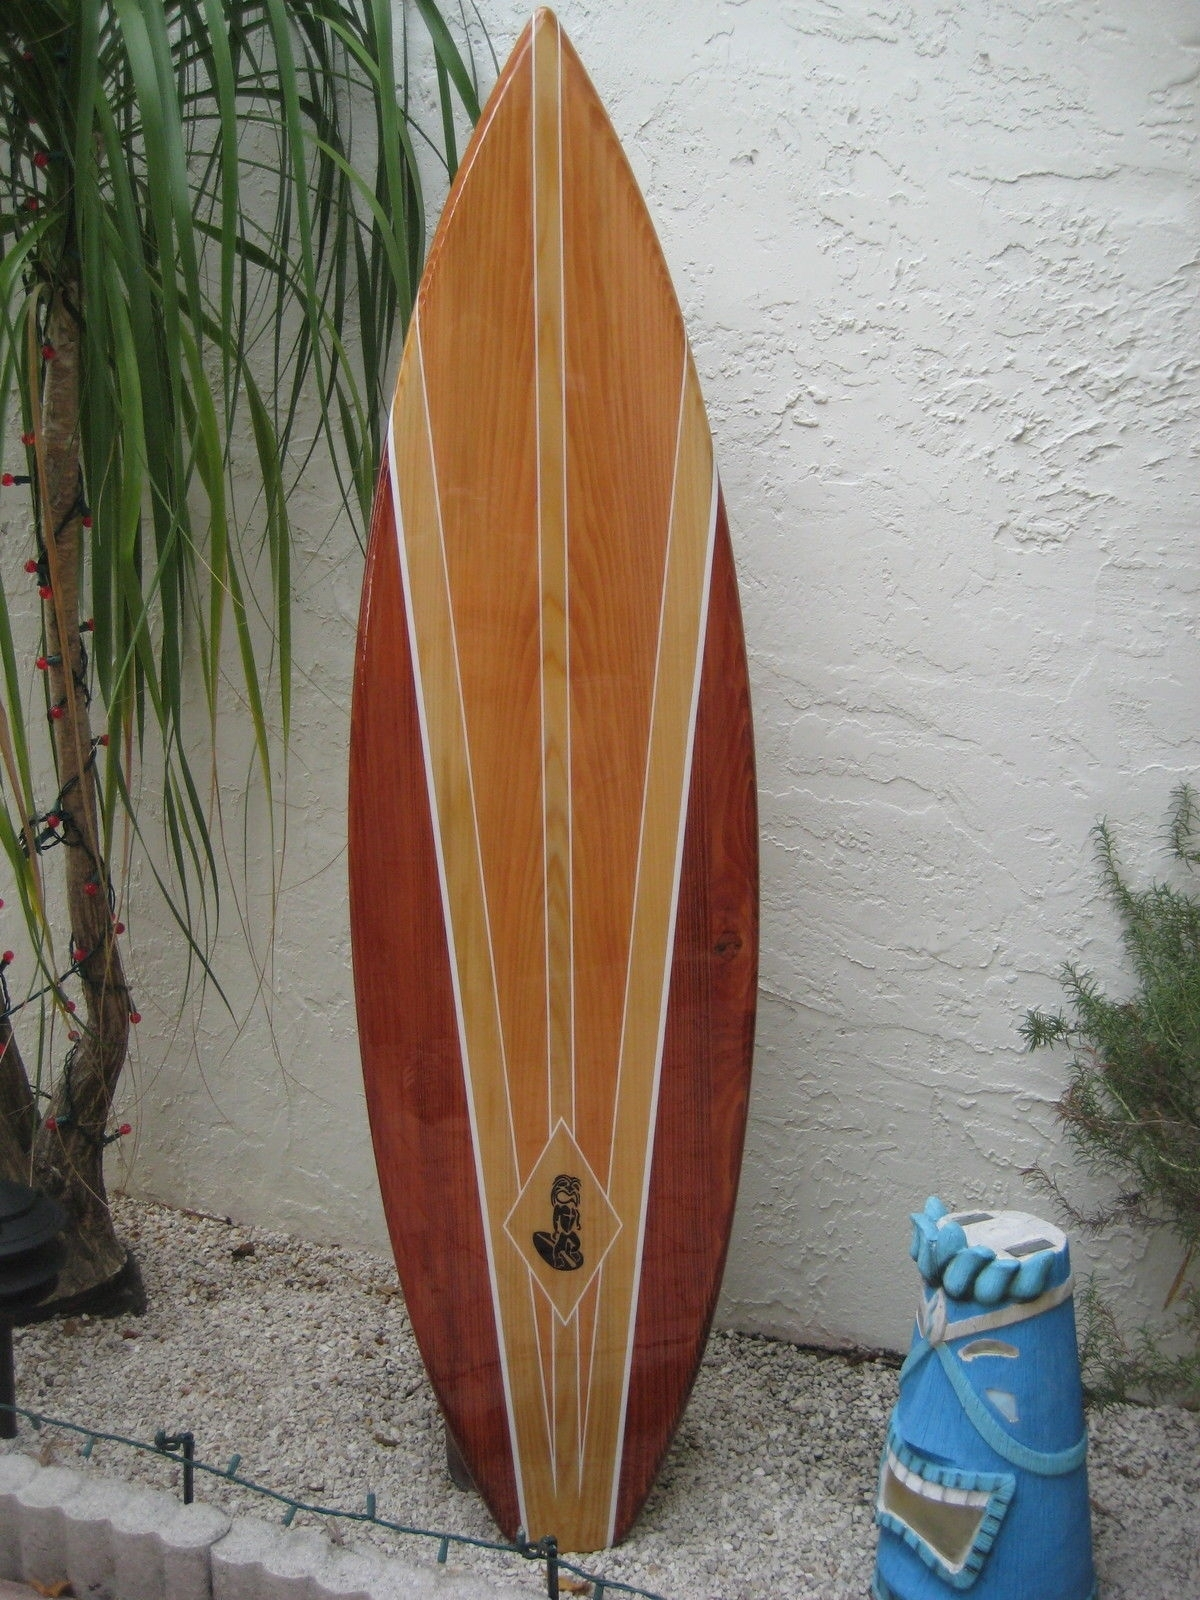 Tropical Decorative Wood Surfboard Wall Art For A Coastal Beach Home Within Surfboard Wall Art (View 14 of 20)